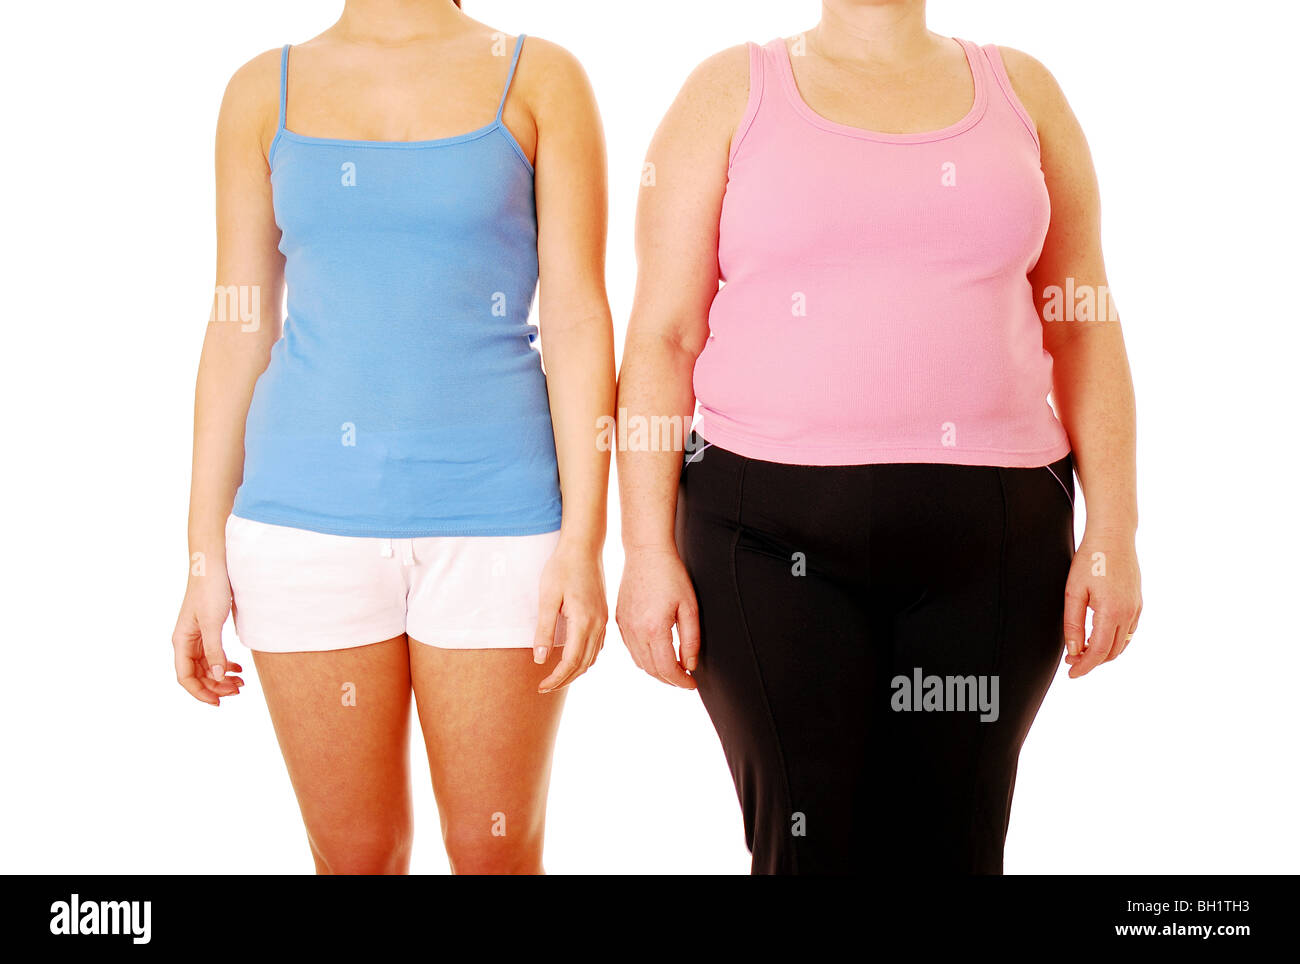 Comparison of two different body shapes Stock Photo